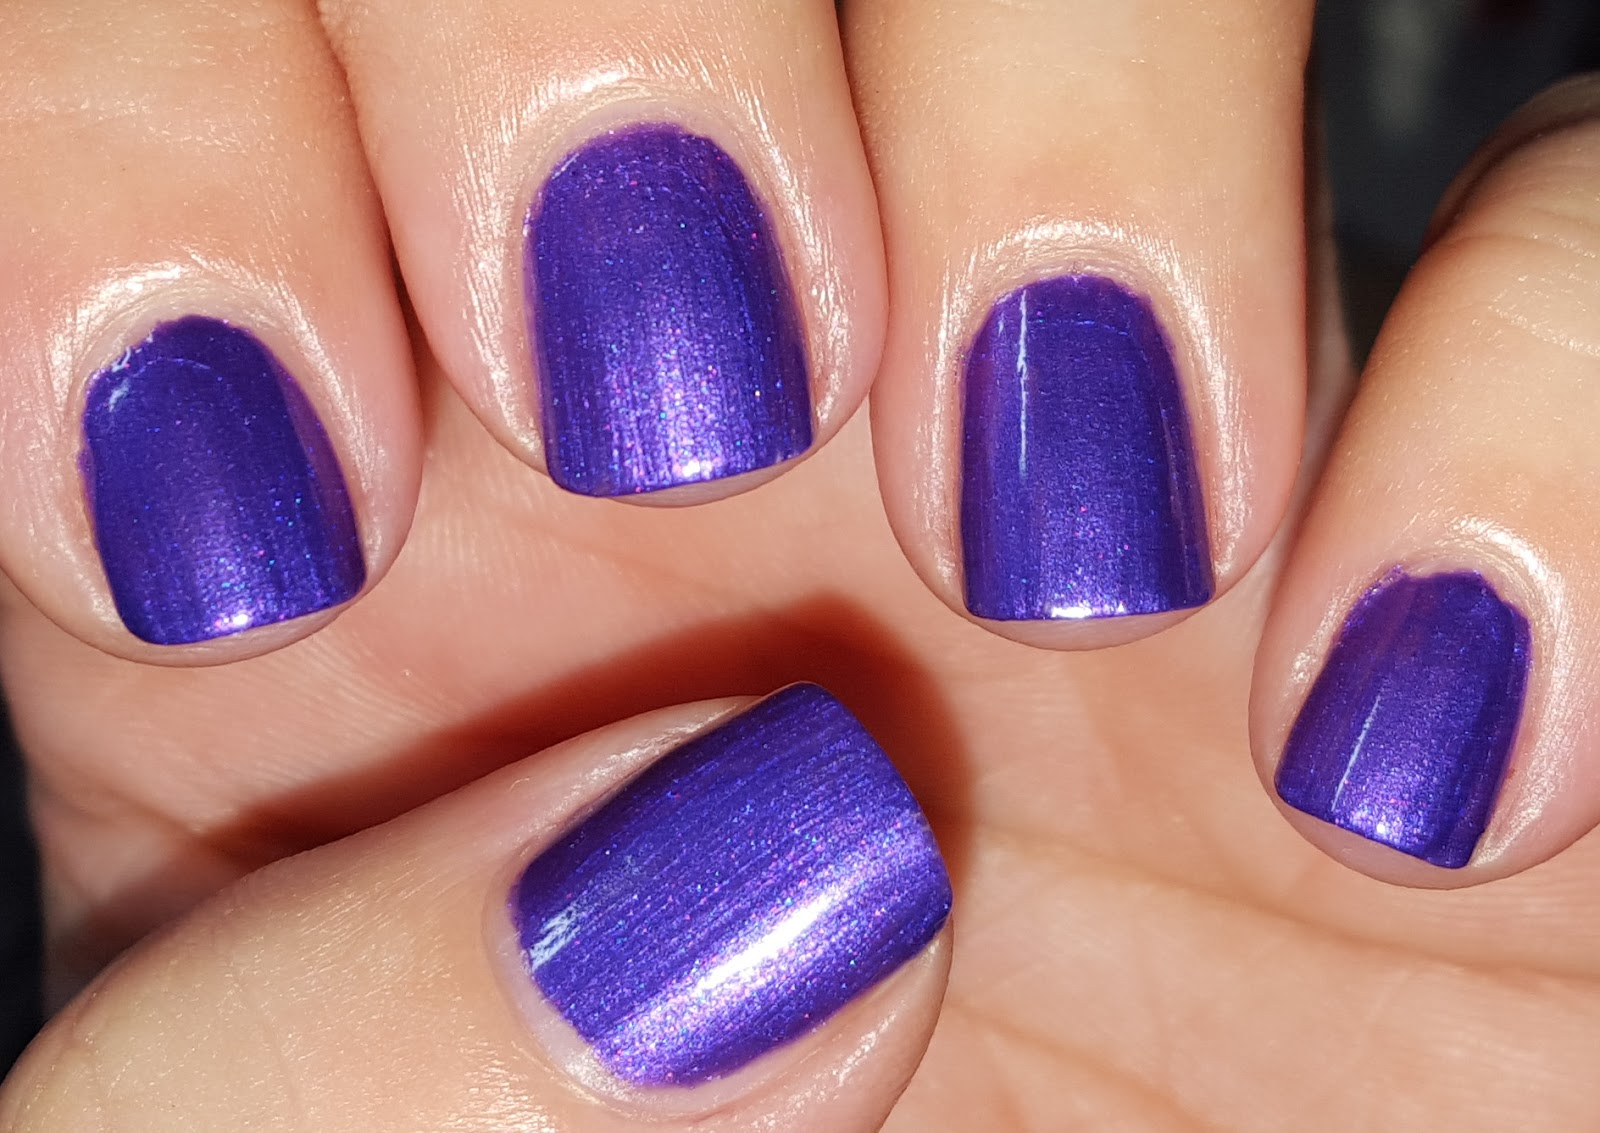 Purple sparkly nails